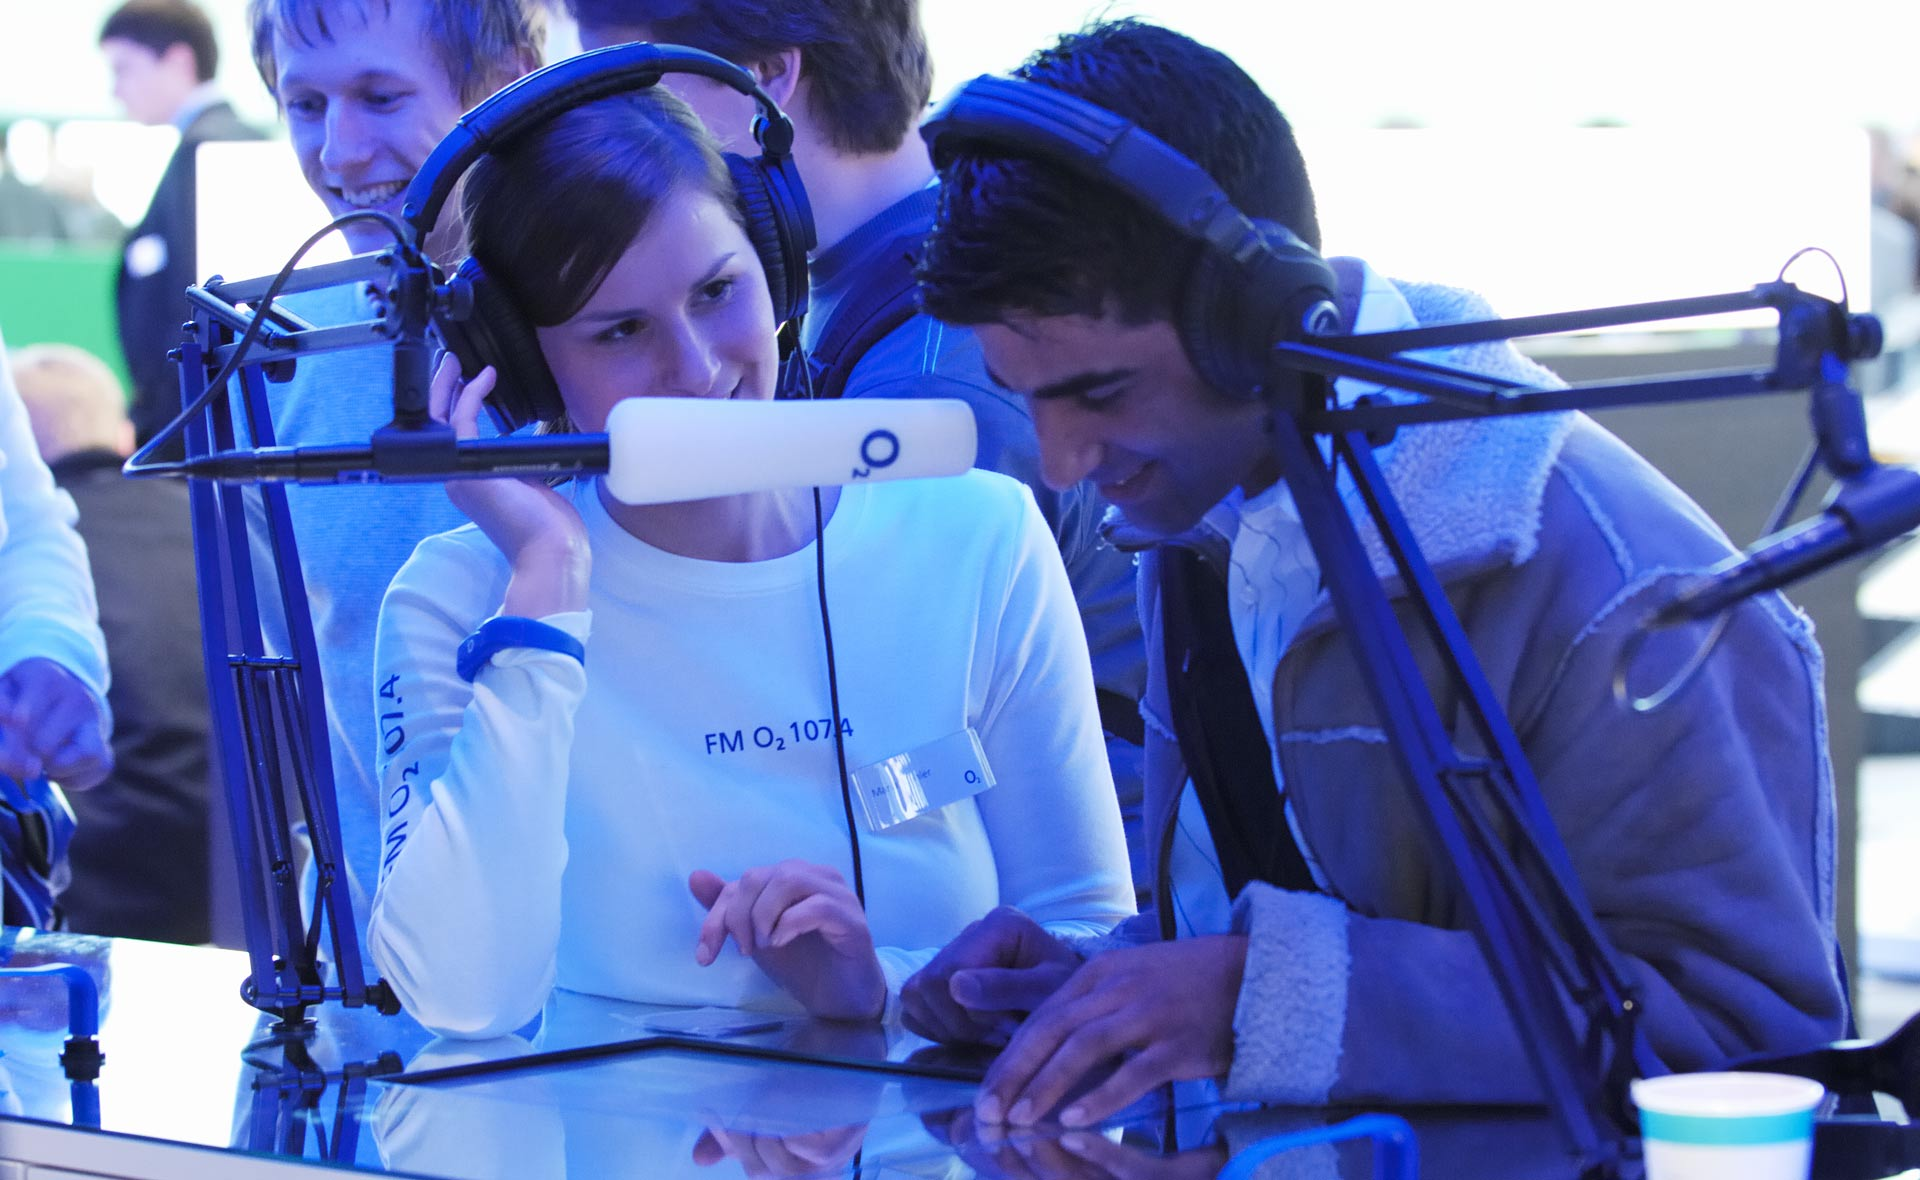 An o2 employee and a visitor wear headphones and speak into a microphone.